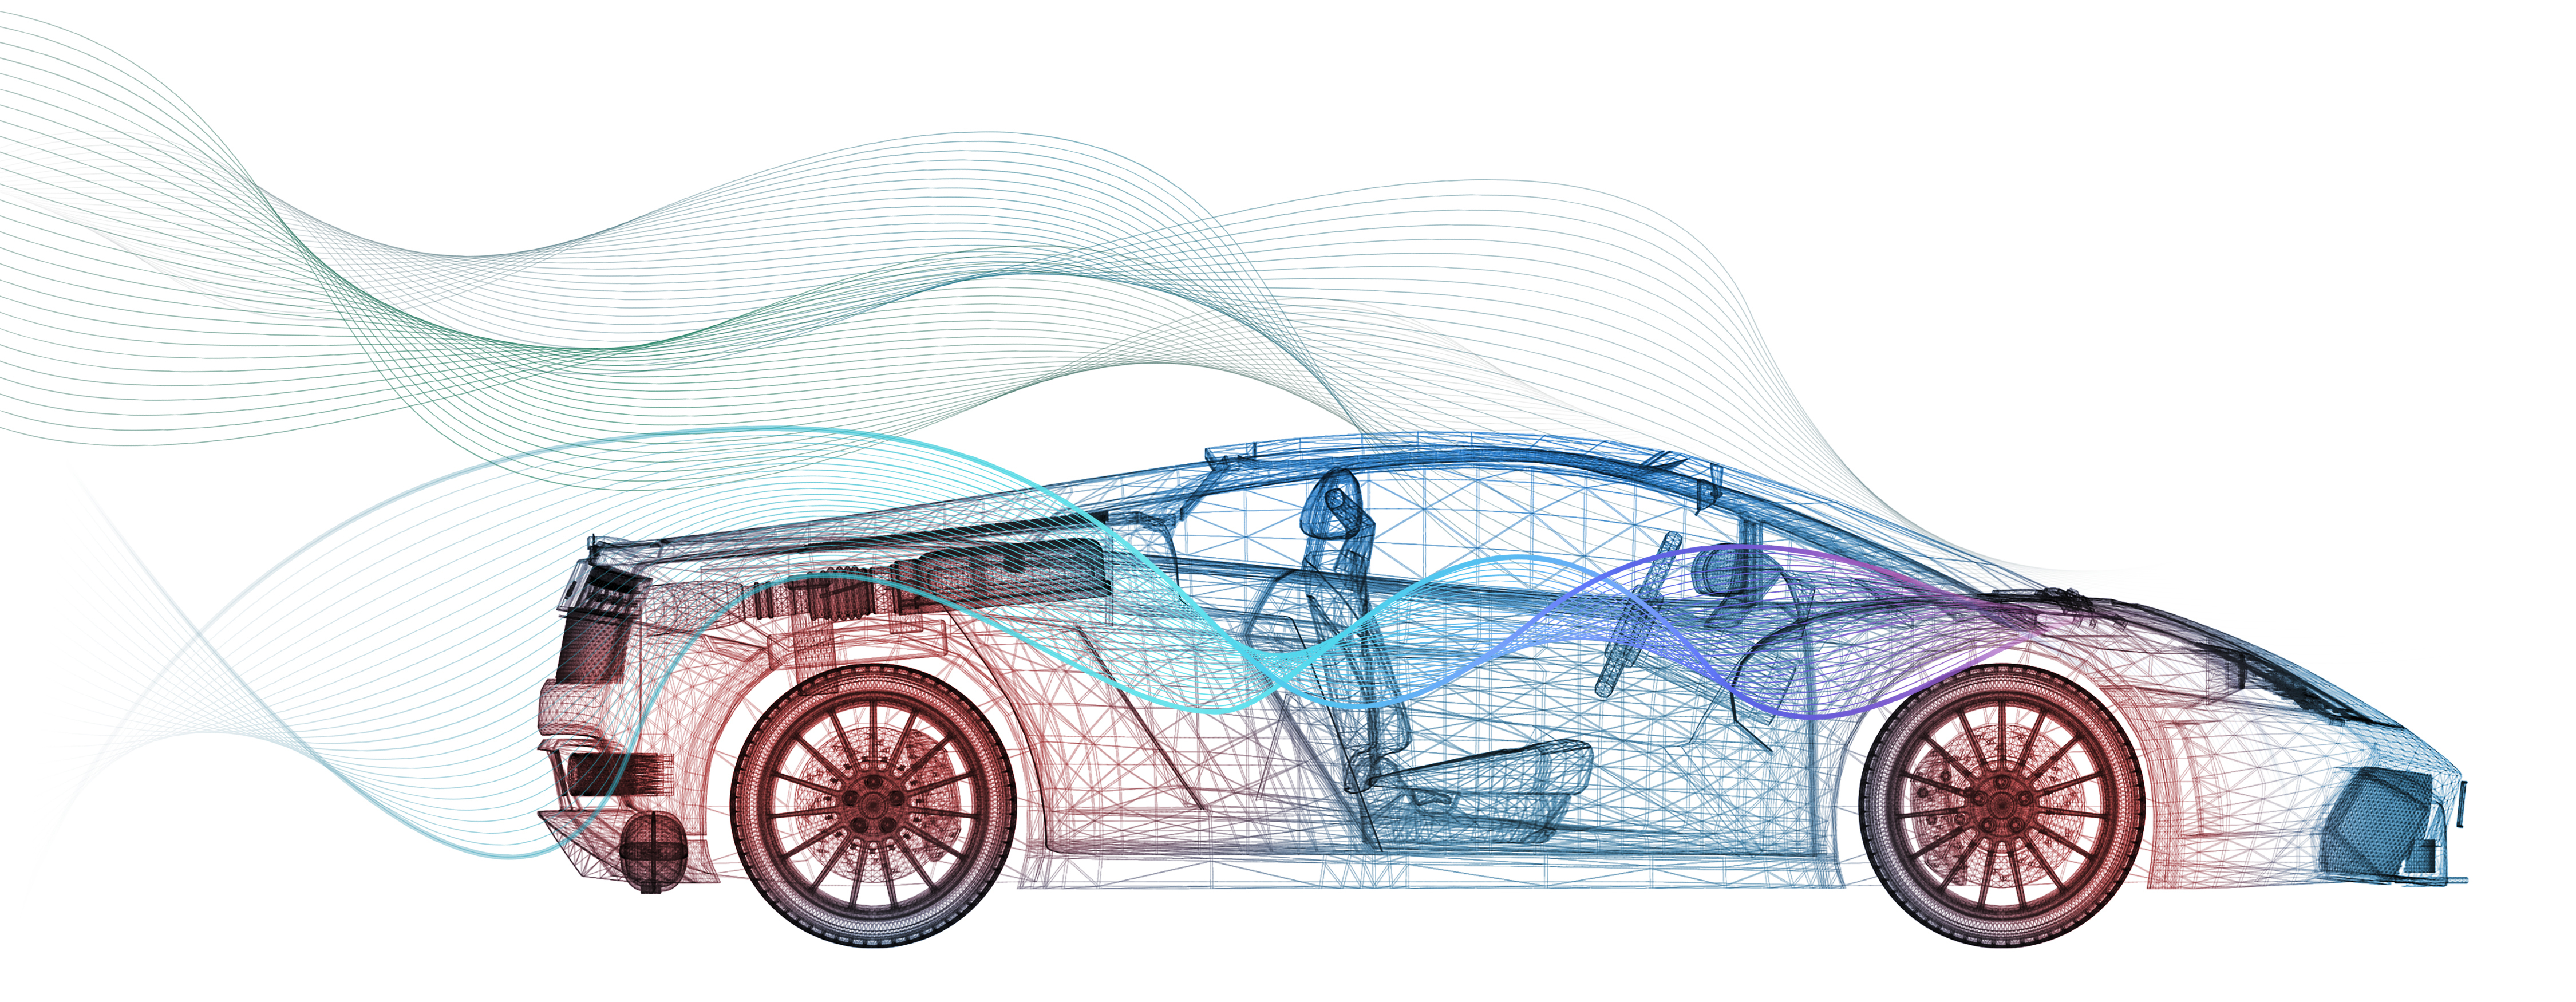 Artistic rendering of automotive thermal imaging